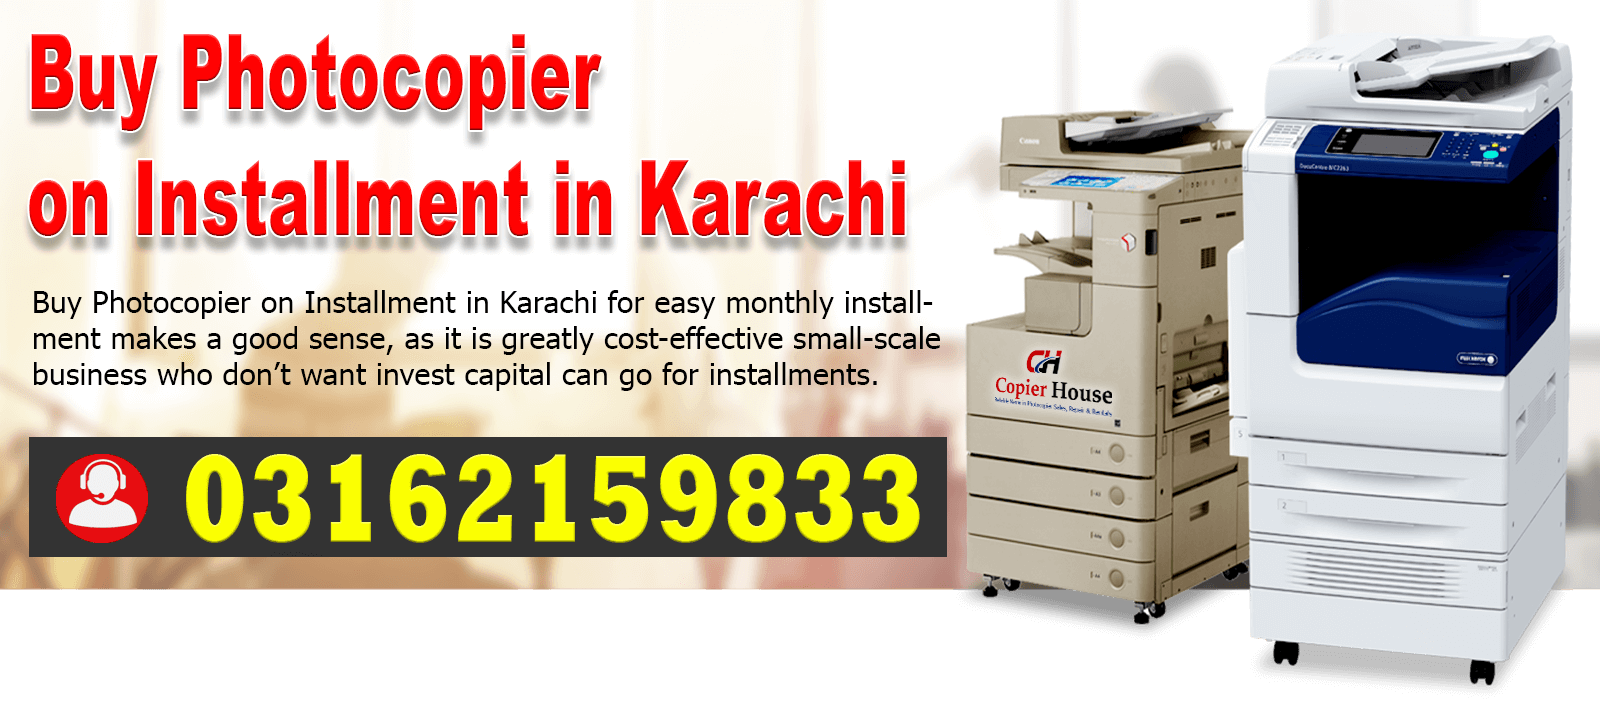 buy-photocopier-on-installment-in-karachi-Pakistan